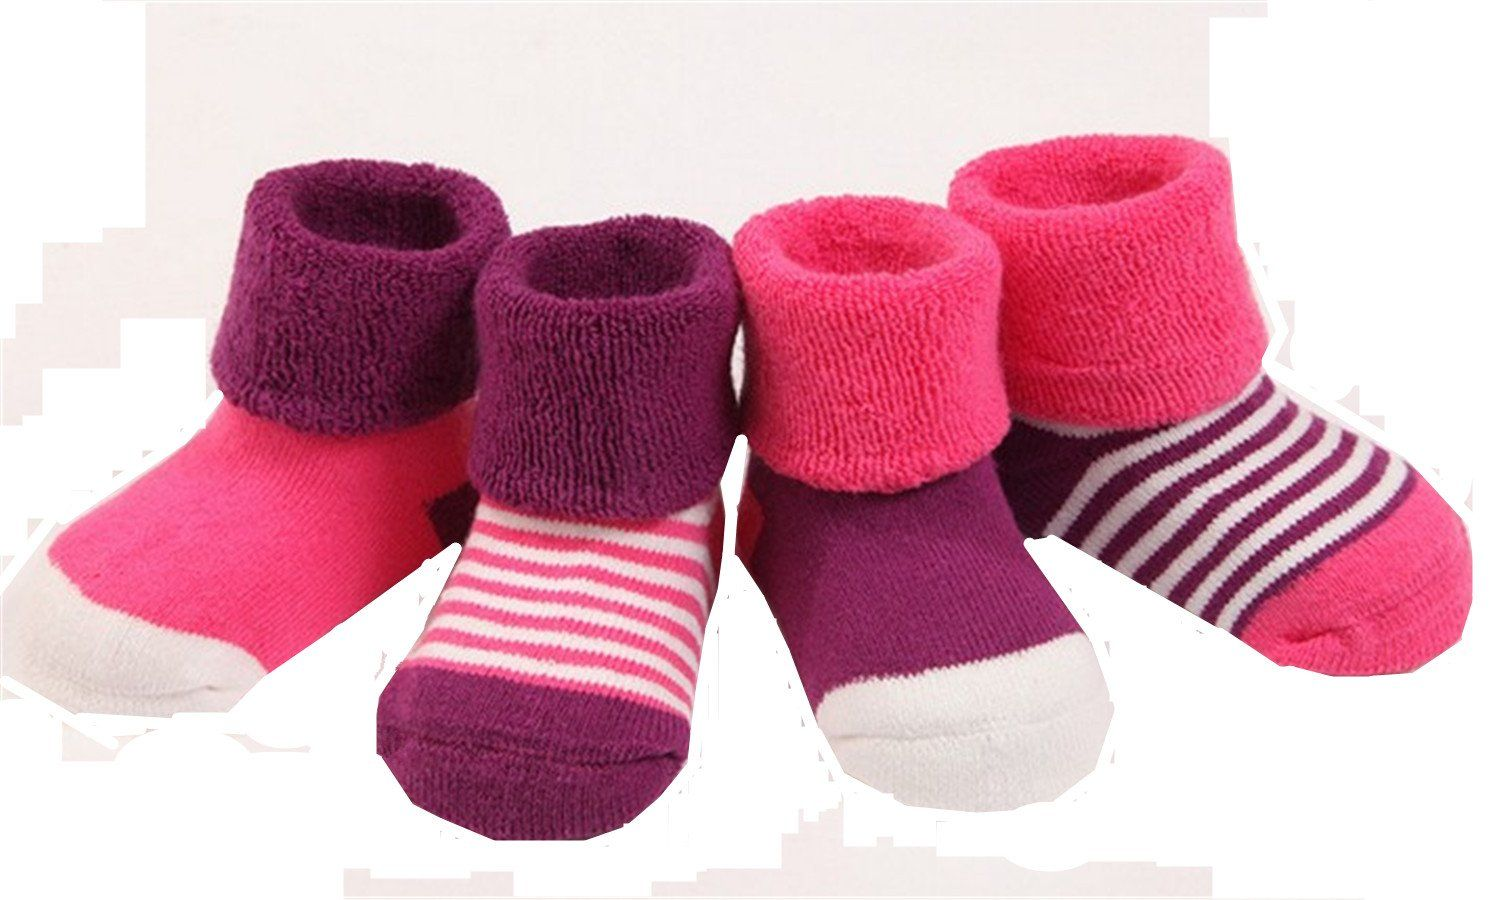 Pack of 3 Baby Boys Girls Unisex Stripes Winter Thick Socks Age 1 to 3